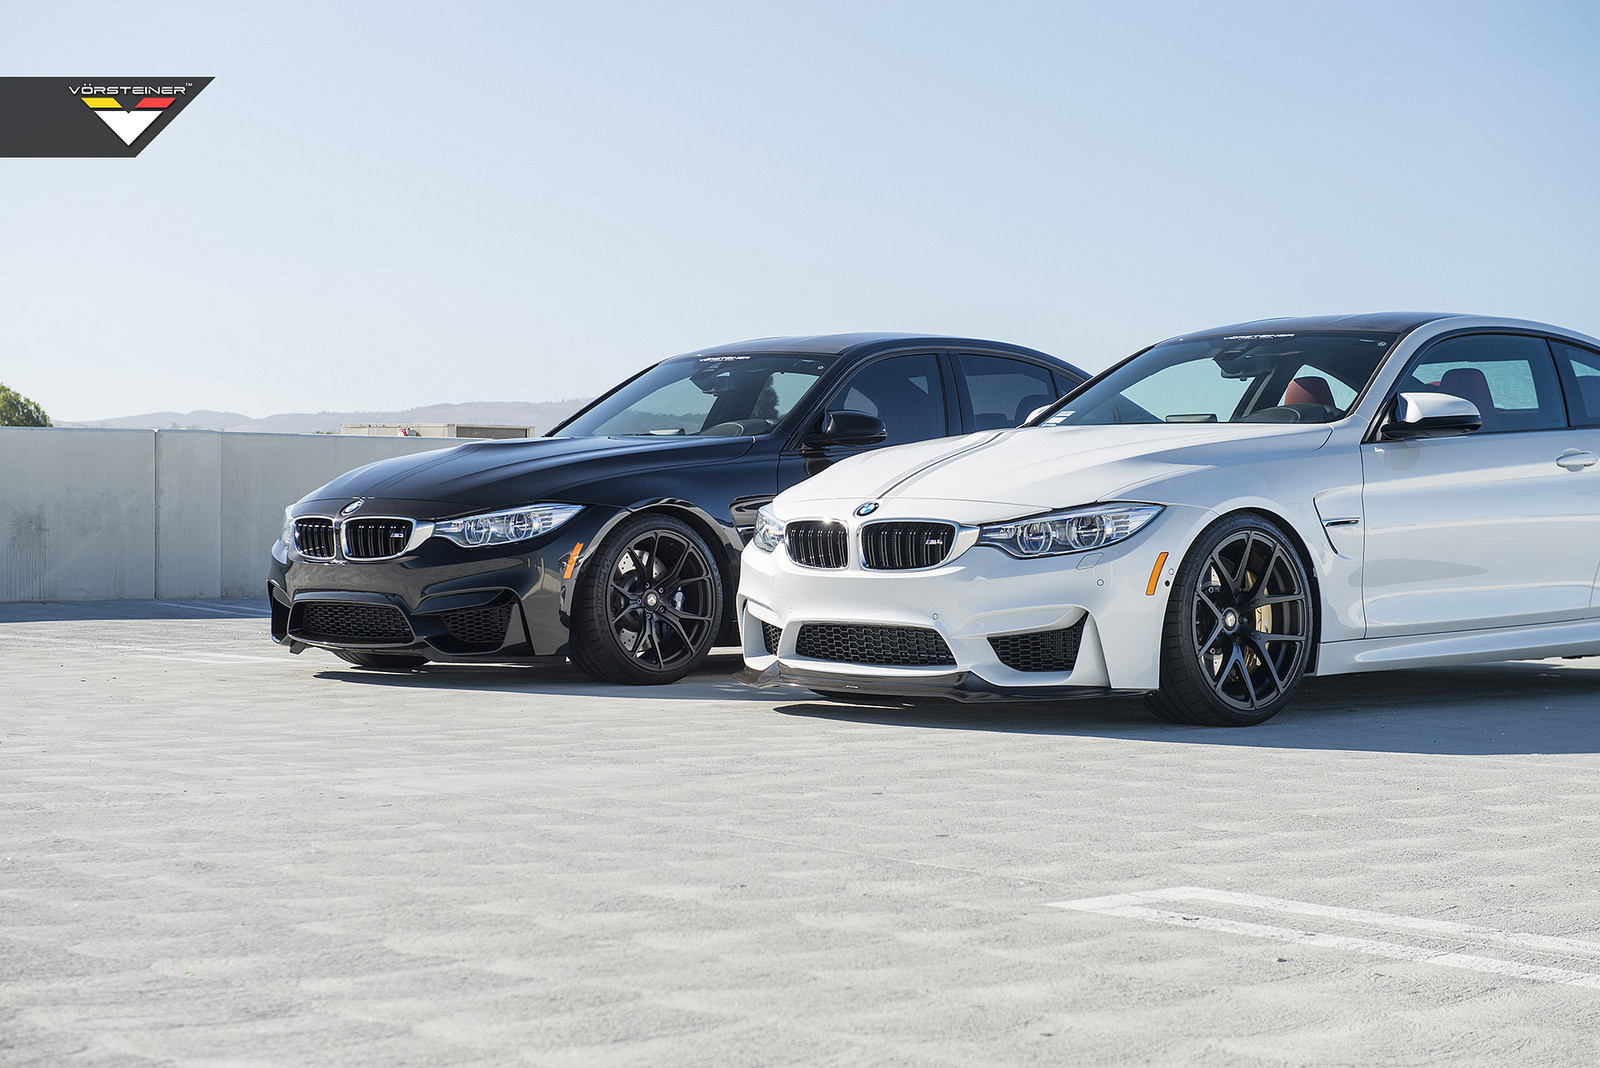 Bmw Driving School >> BMW F80 M3 And BMW F82 M4 By Vorsteiner